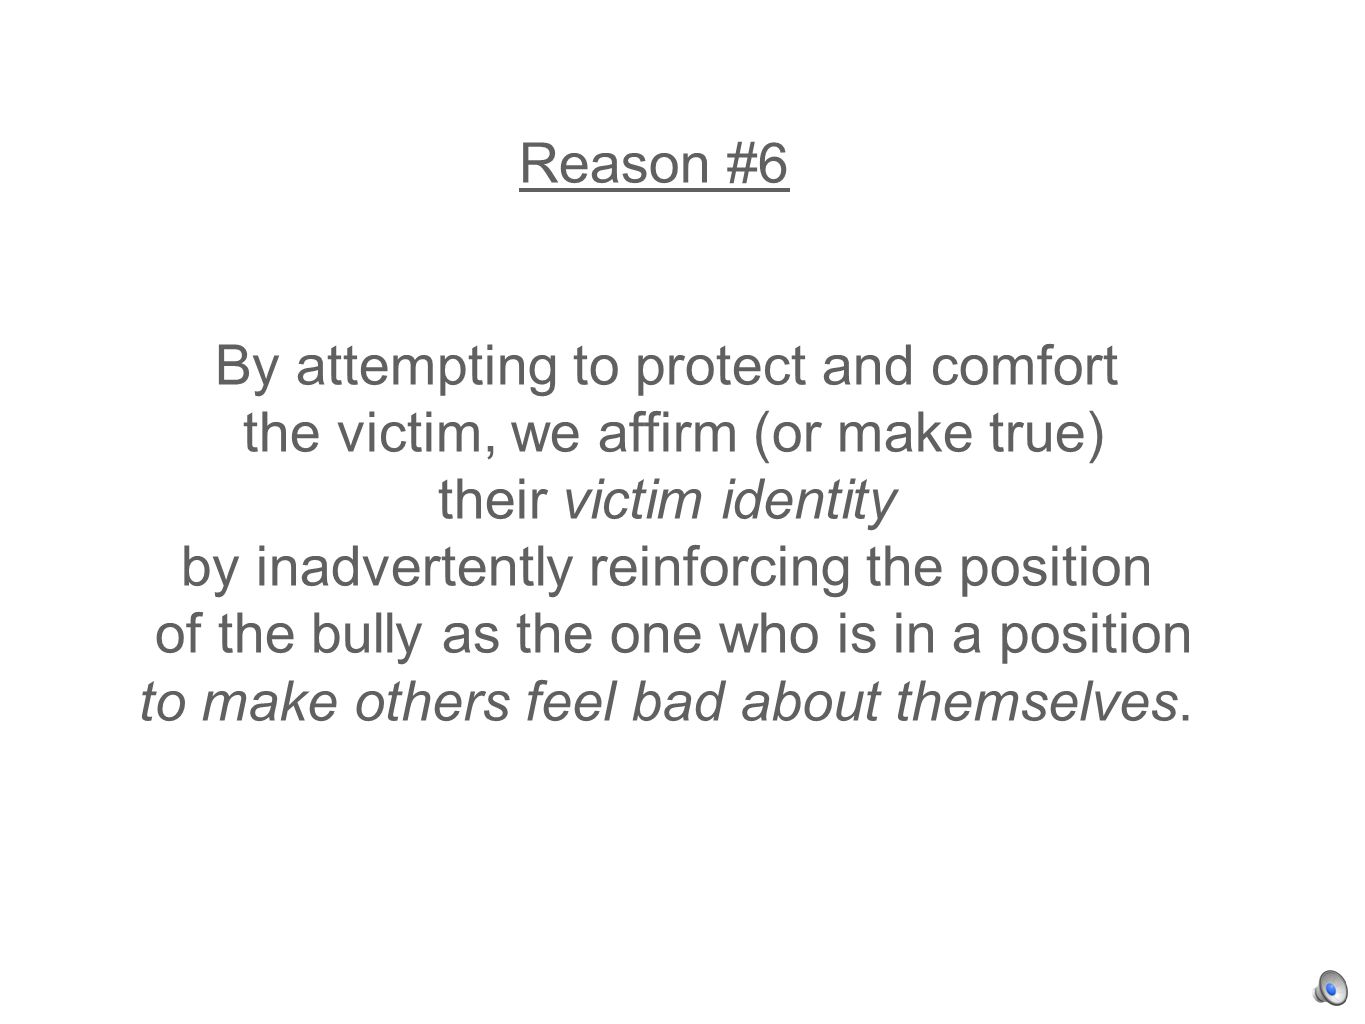 Reason #6 By attempting to protect and comfort the victim, we affirm (or make true) their victim identity by inadvertently reinforcing the position of the bully as the one who is in a position to make others feel bad about themselves.